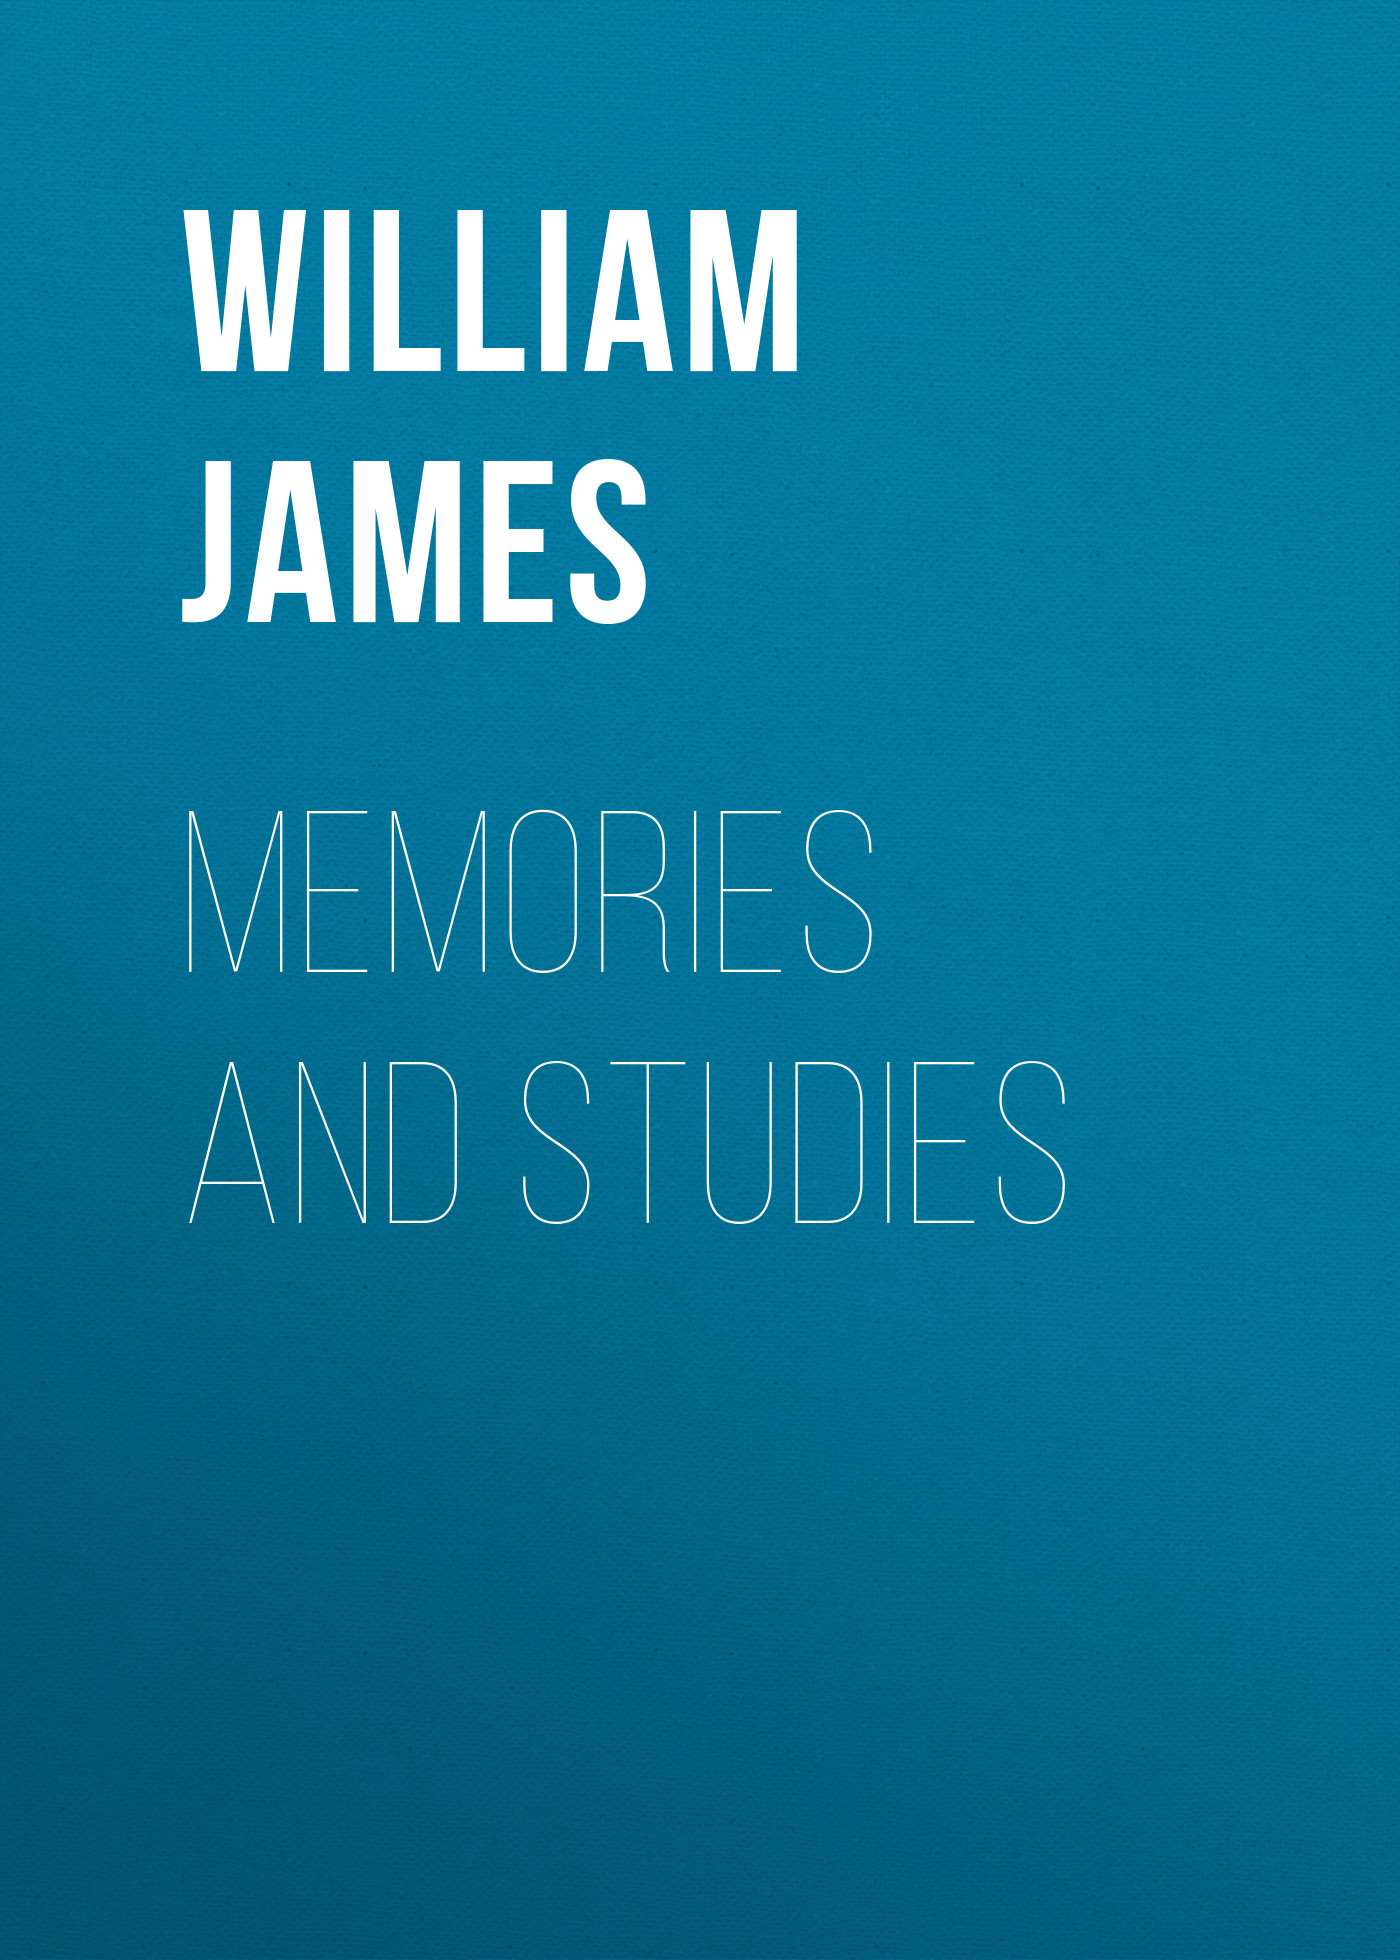 William James Memories and Studies shakespeare william rdr cd [lv 2] romeo and juliet